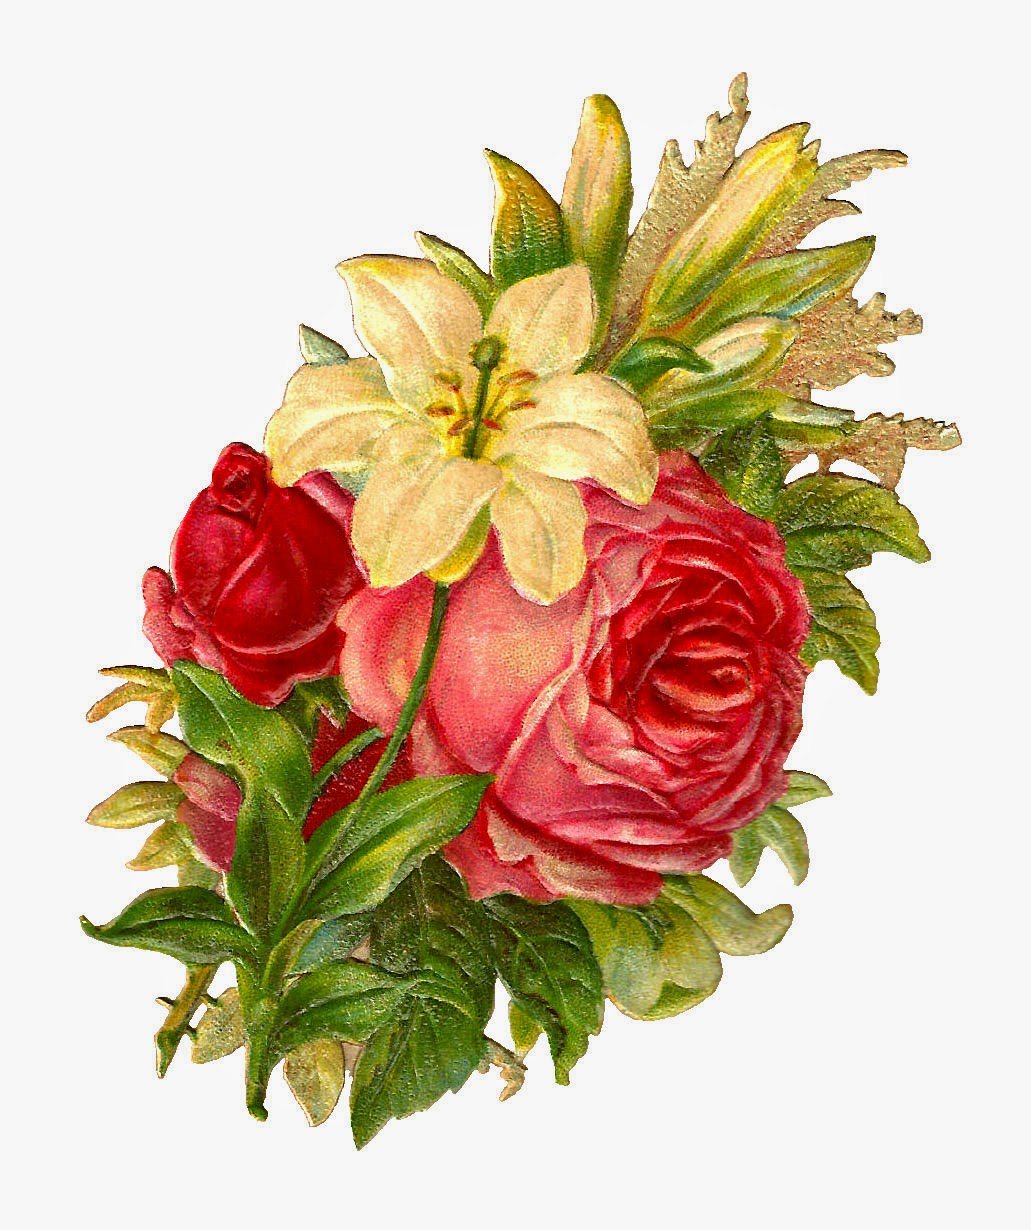 Antique Images Free Digital Flower Bouquet Images Of Red And Pink